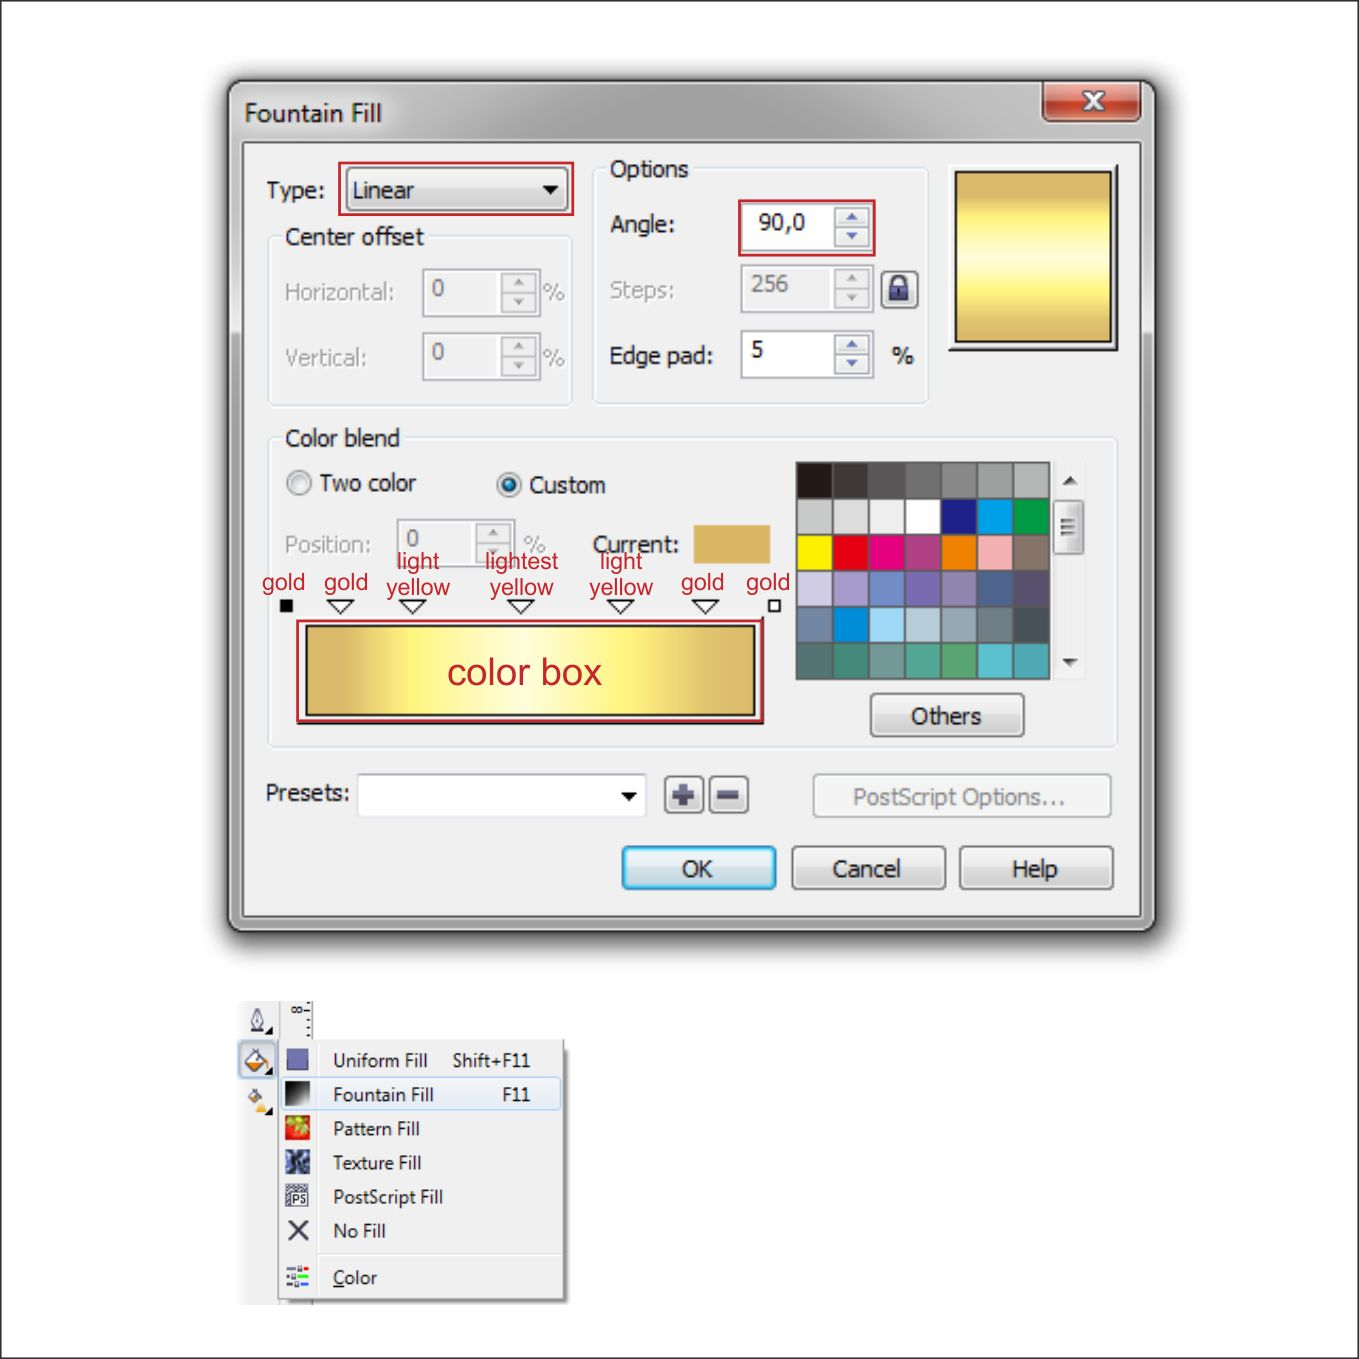 Line color in coreldraw - Now Lets Put Color In It Go To The Fountain Fill Tool And Set The Value The Same As The Golden Second Circle